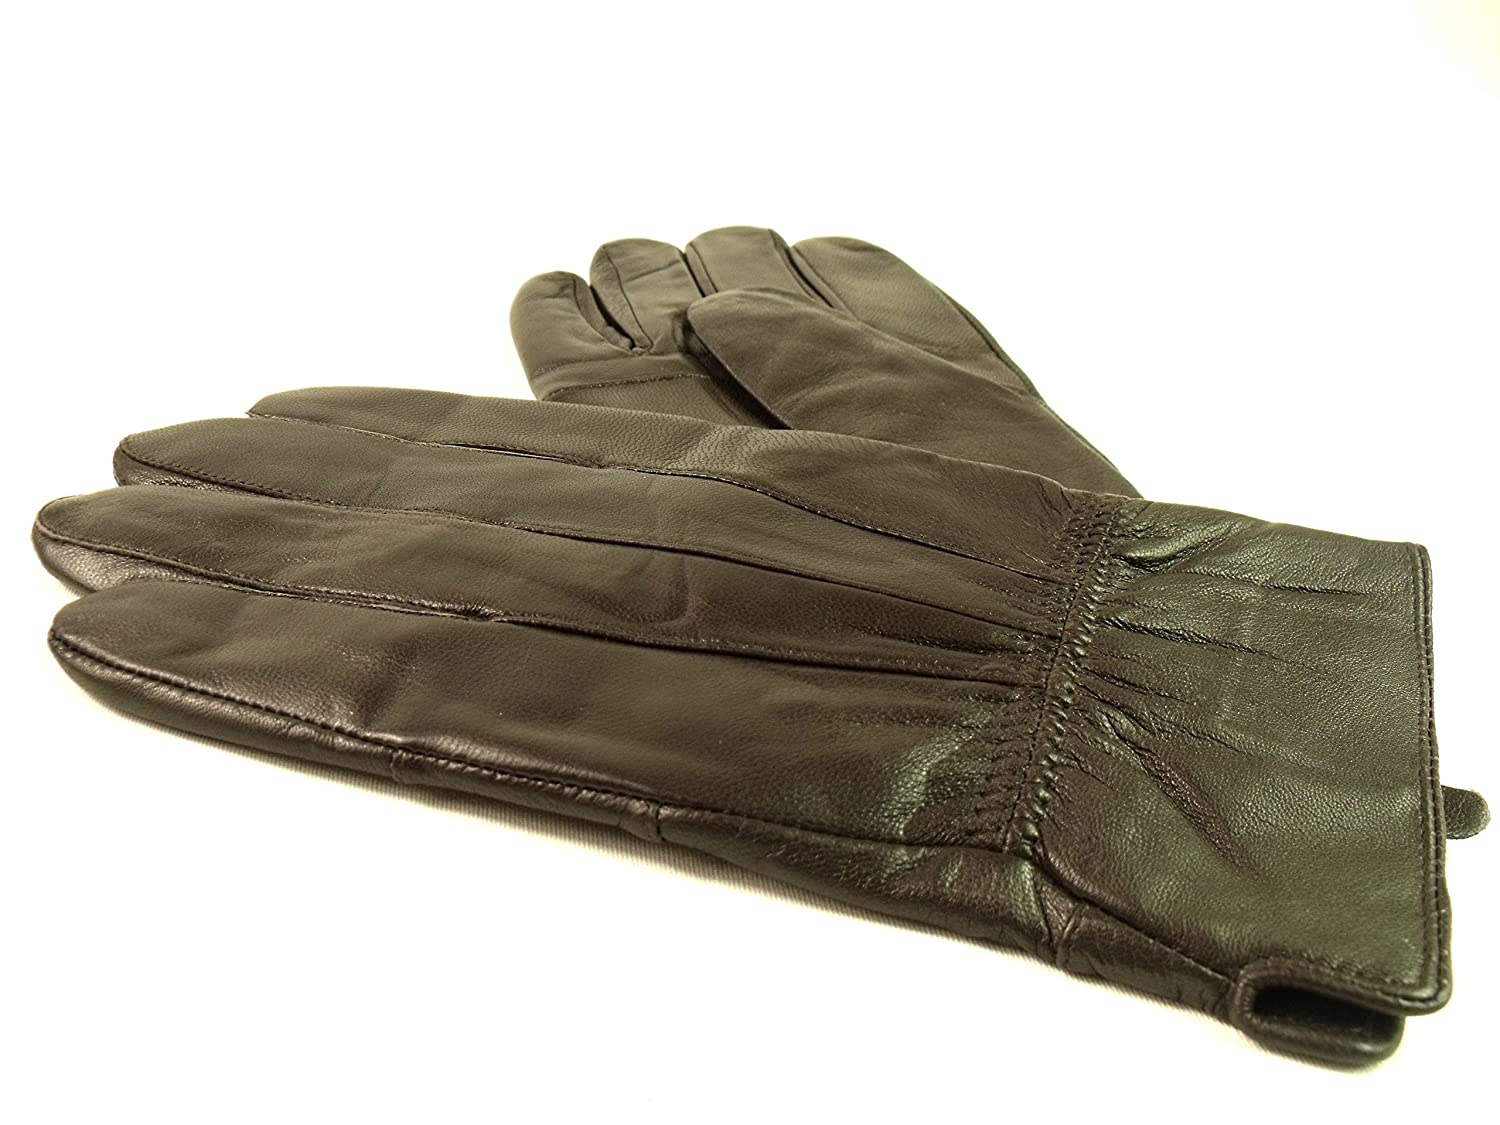 Mens leather gloves amazon uk - Mens New Brown Fully Lined Leather Gloves 8922